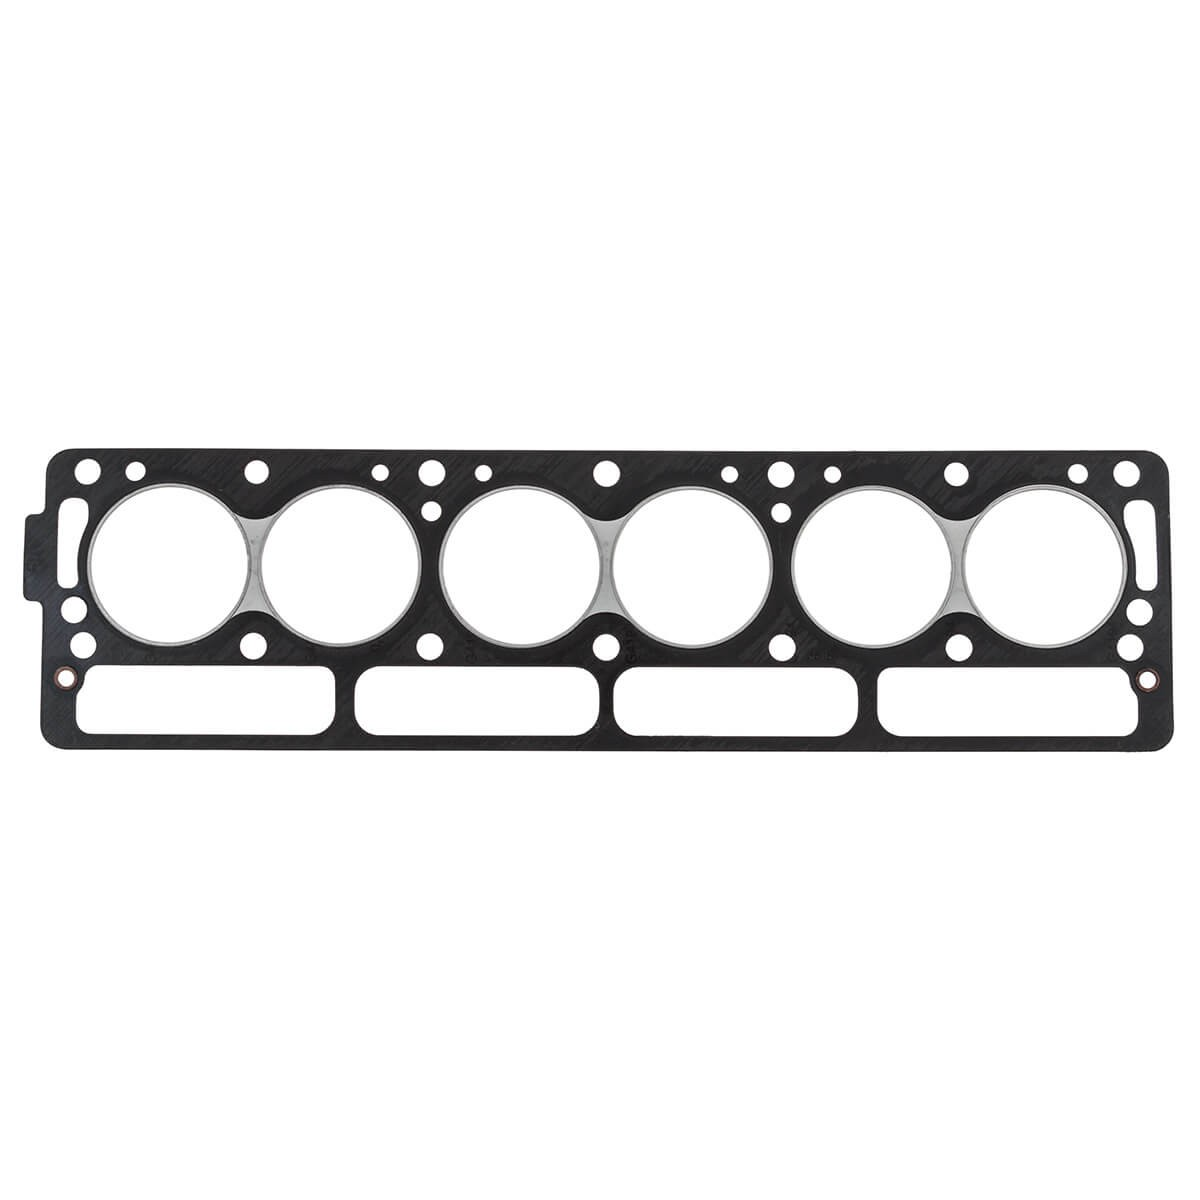 694 640 Gasket Cylinder Head Recessed Block Aftermarket